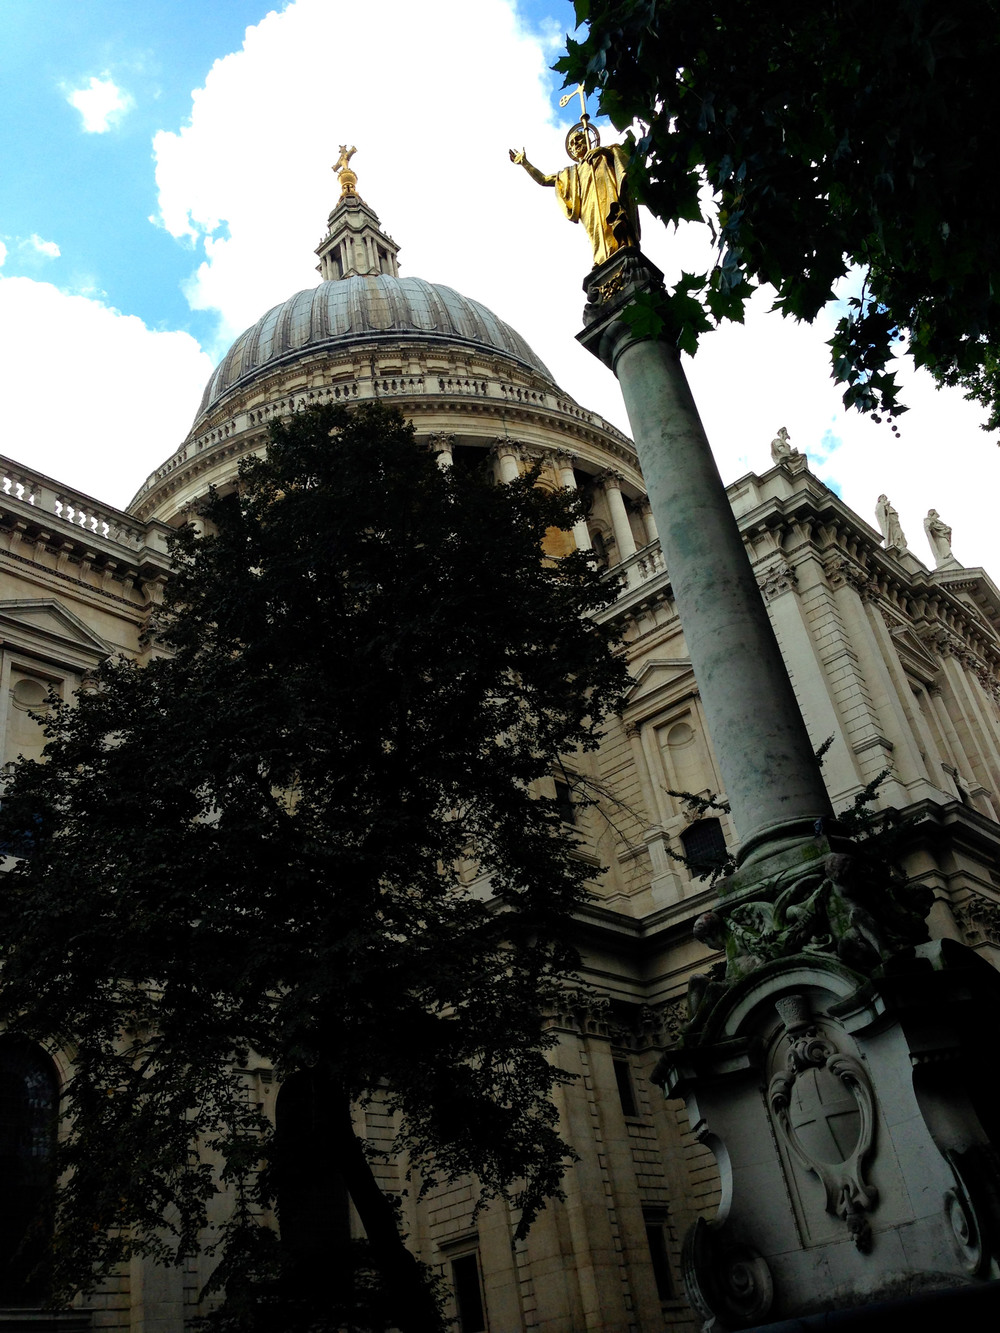 St. Paul's Cathedral from the courtyard